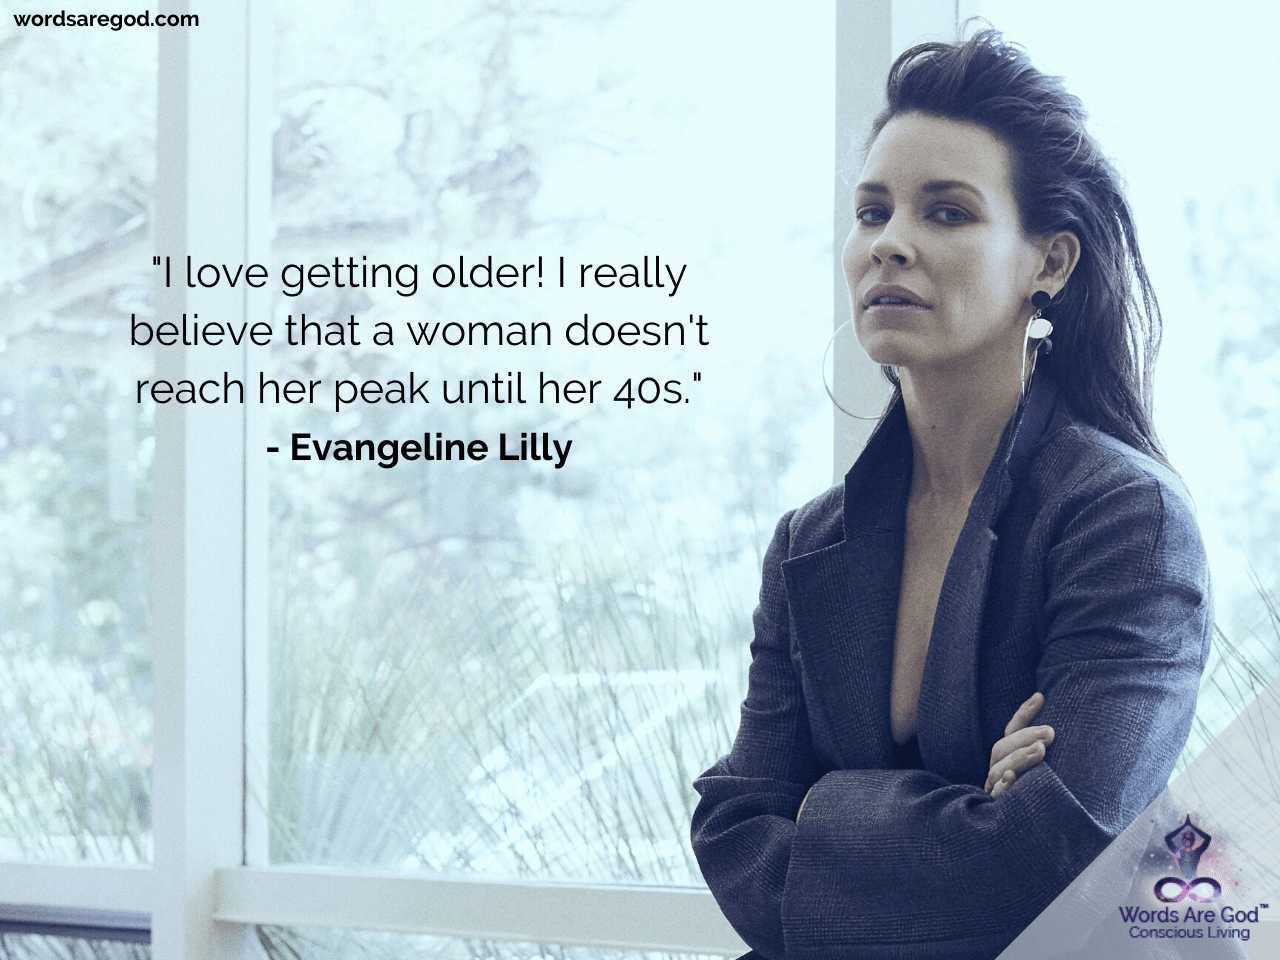 Evangeline Lilly Motivational Quotes